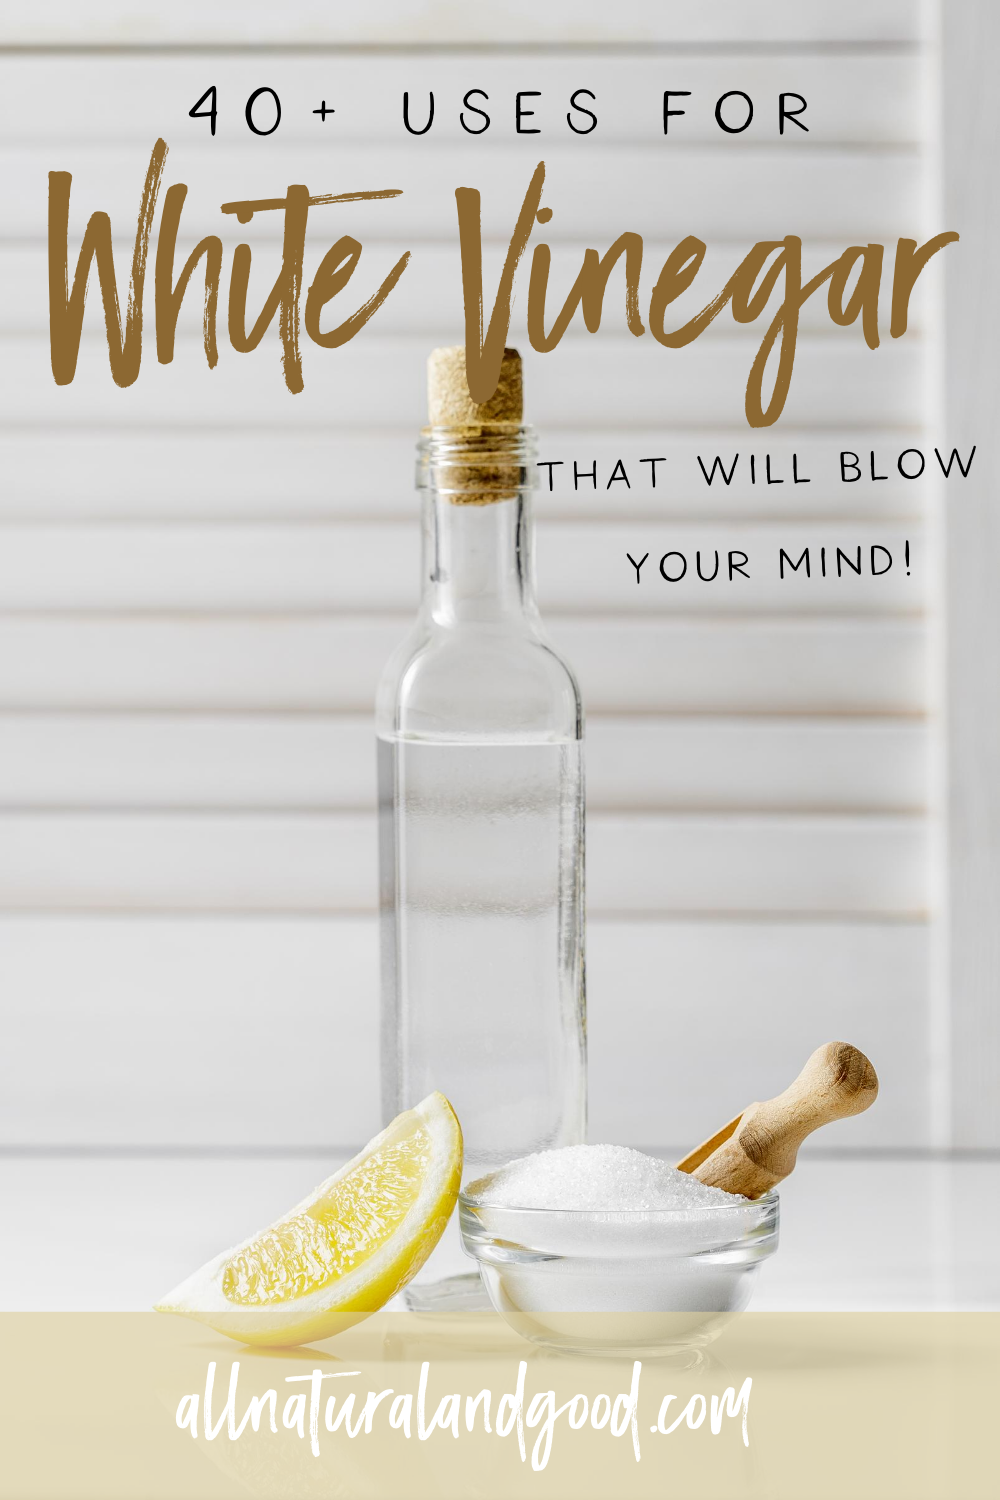 40+ Uses for Vinegar That Will Blow Your Mind